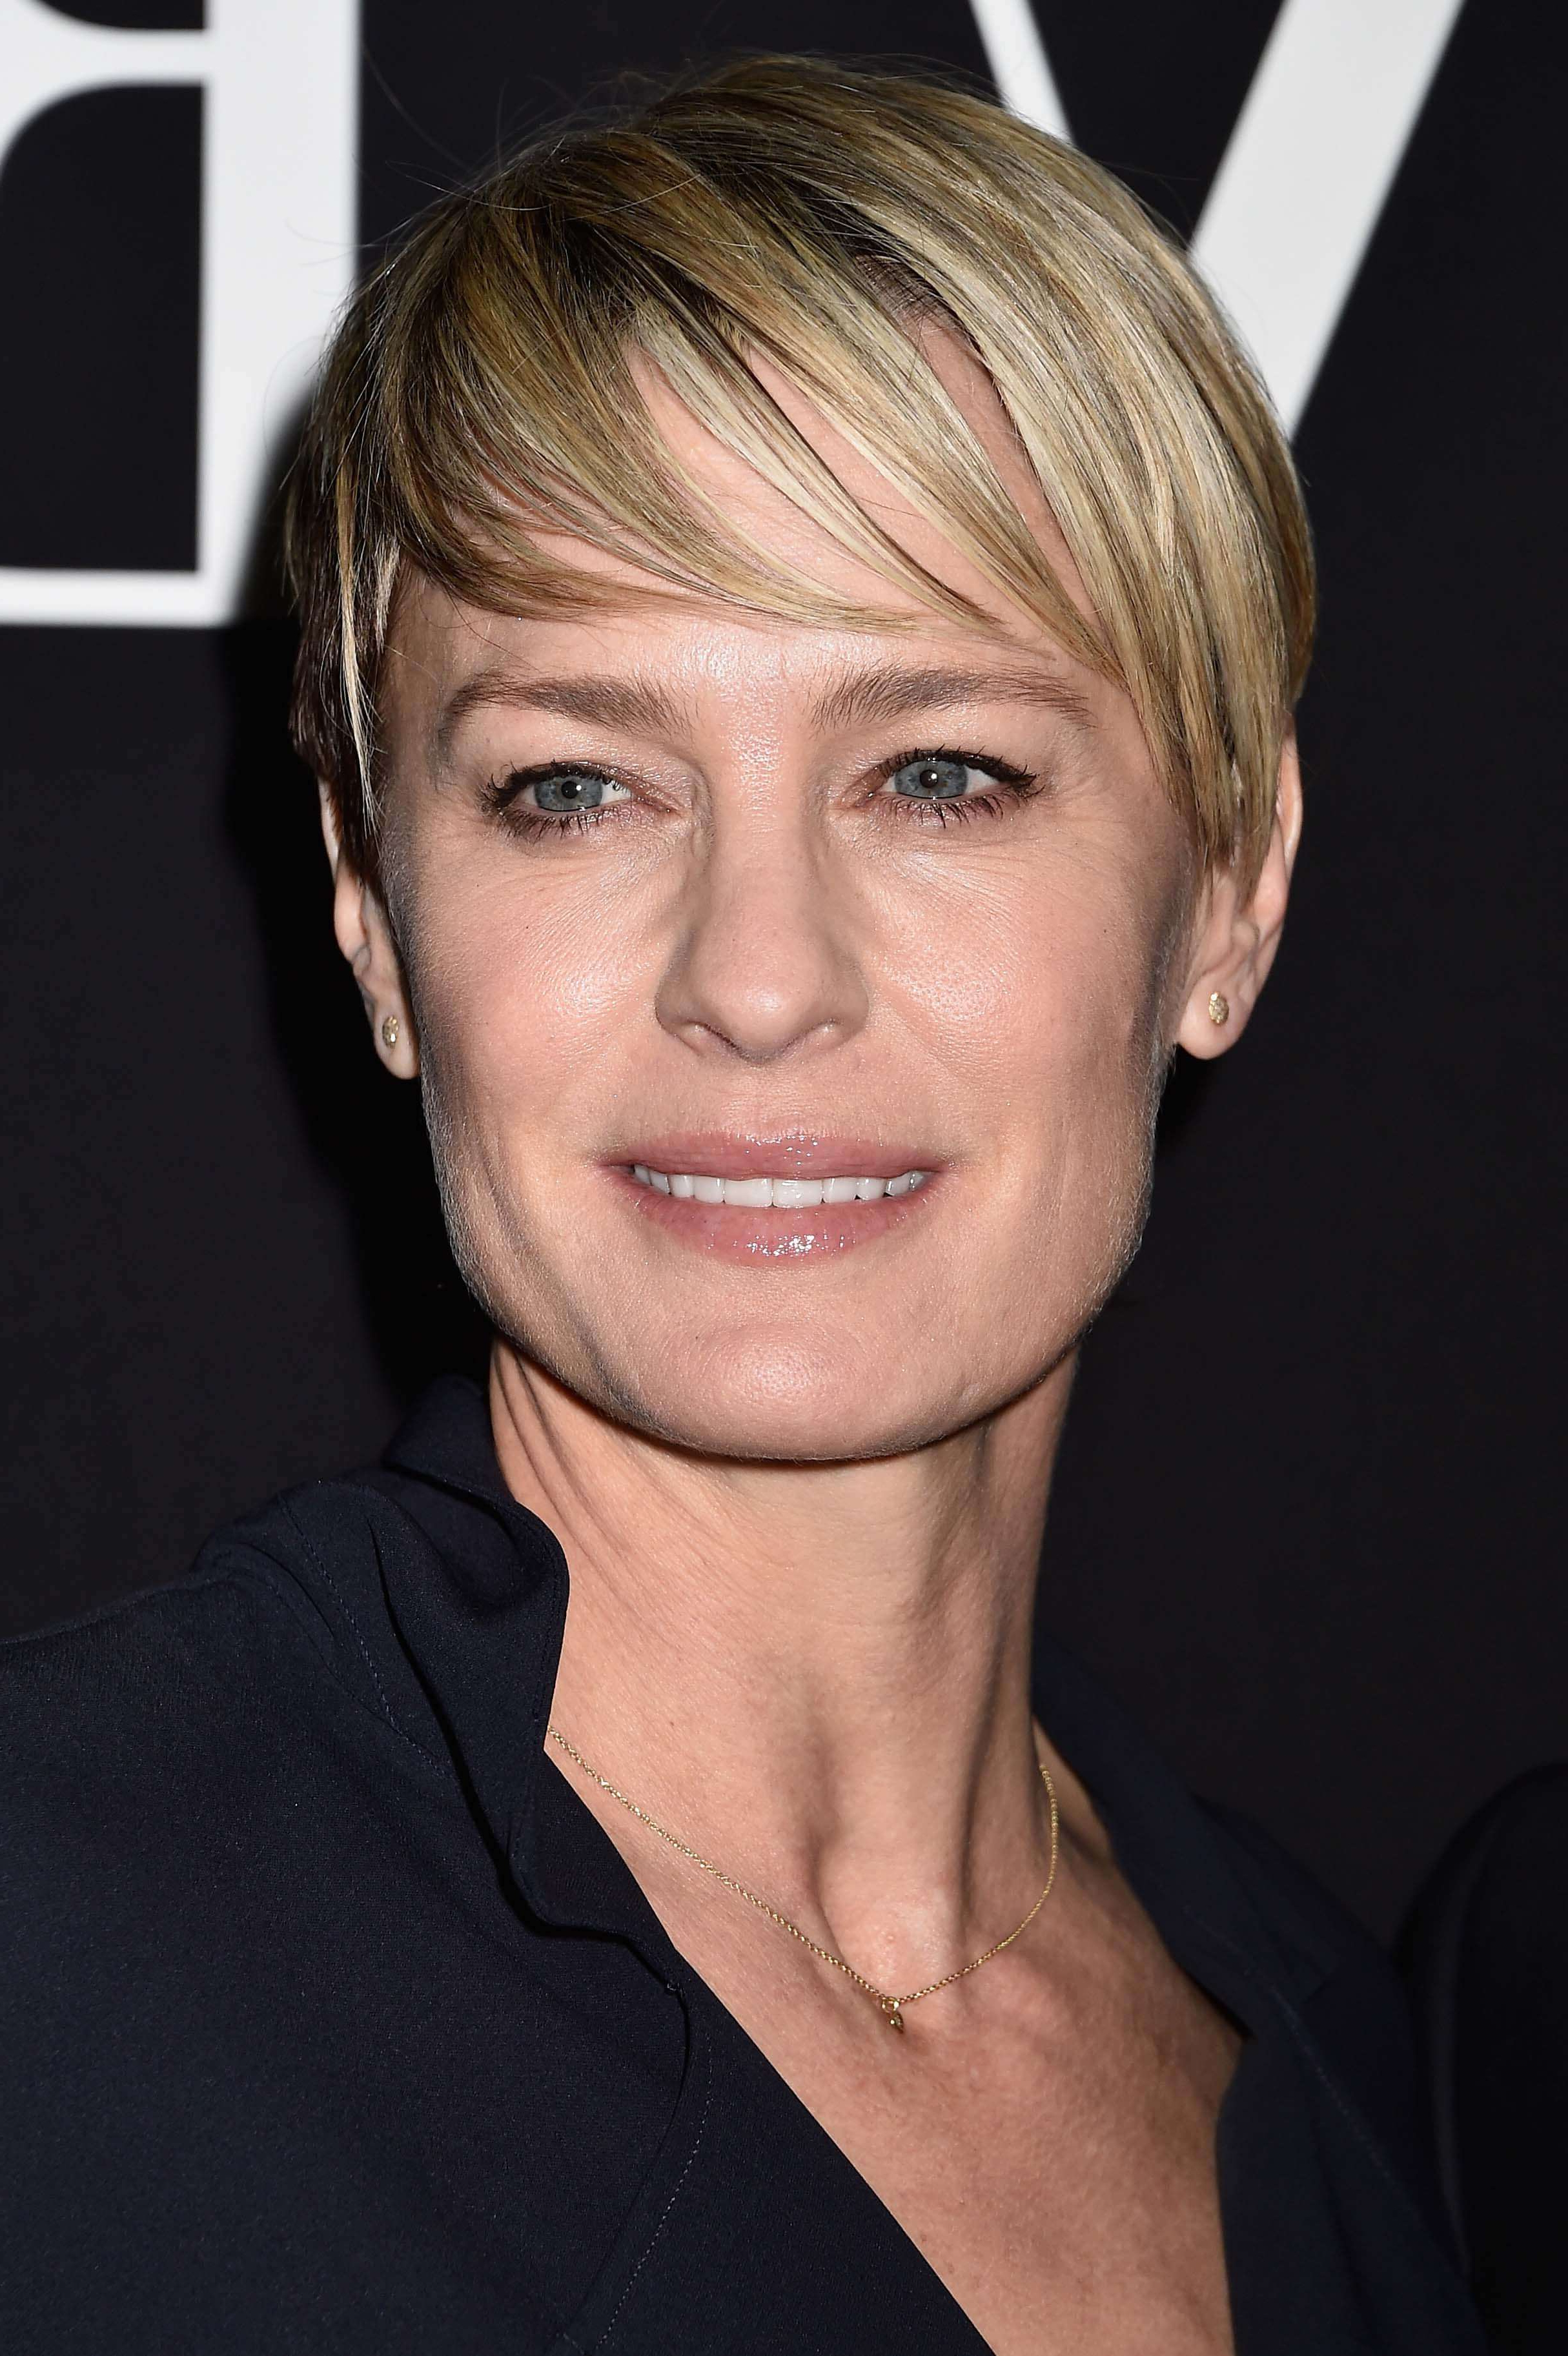 5 Flattering Short Hairstyles For Square Faces You Need To See | All Inside Short Haircuts For Square Jaws (View 6 of 25)